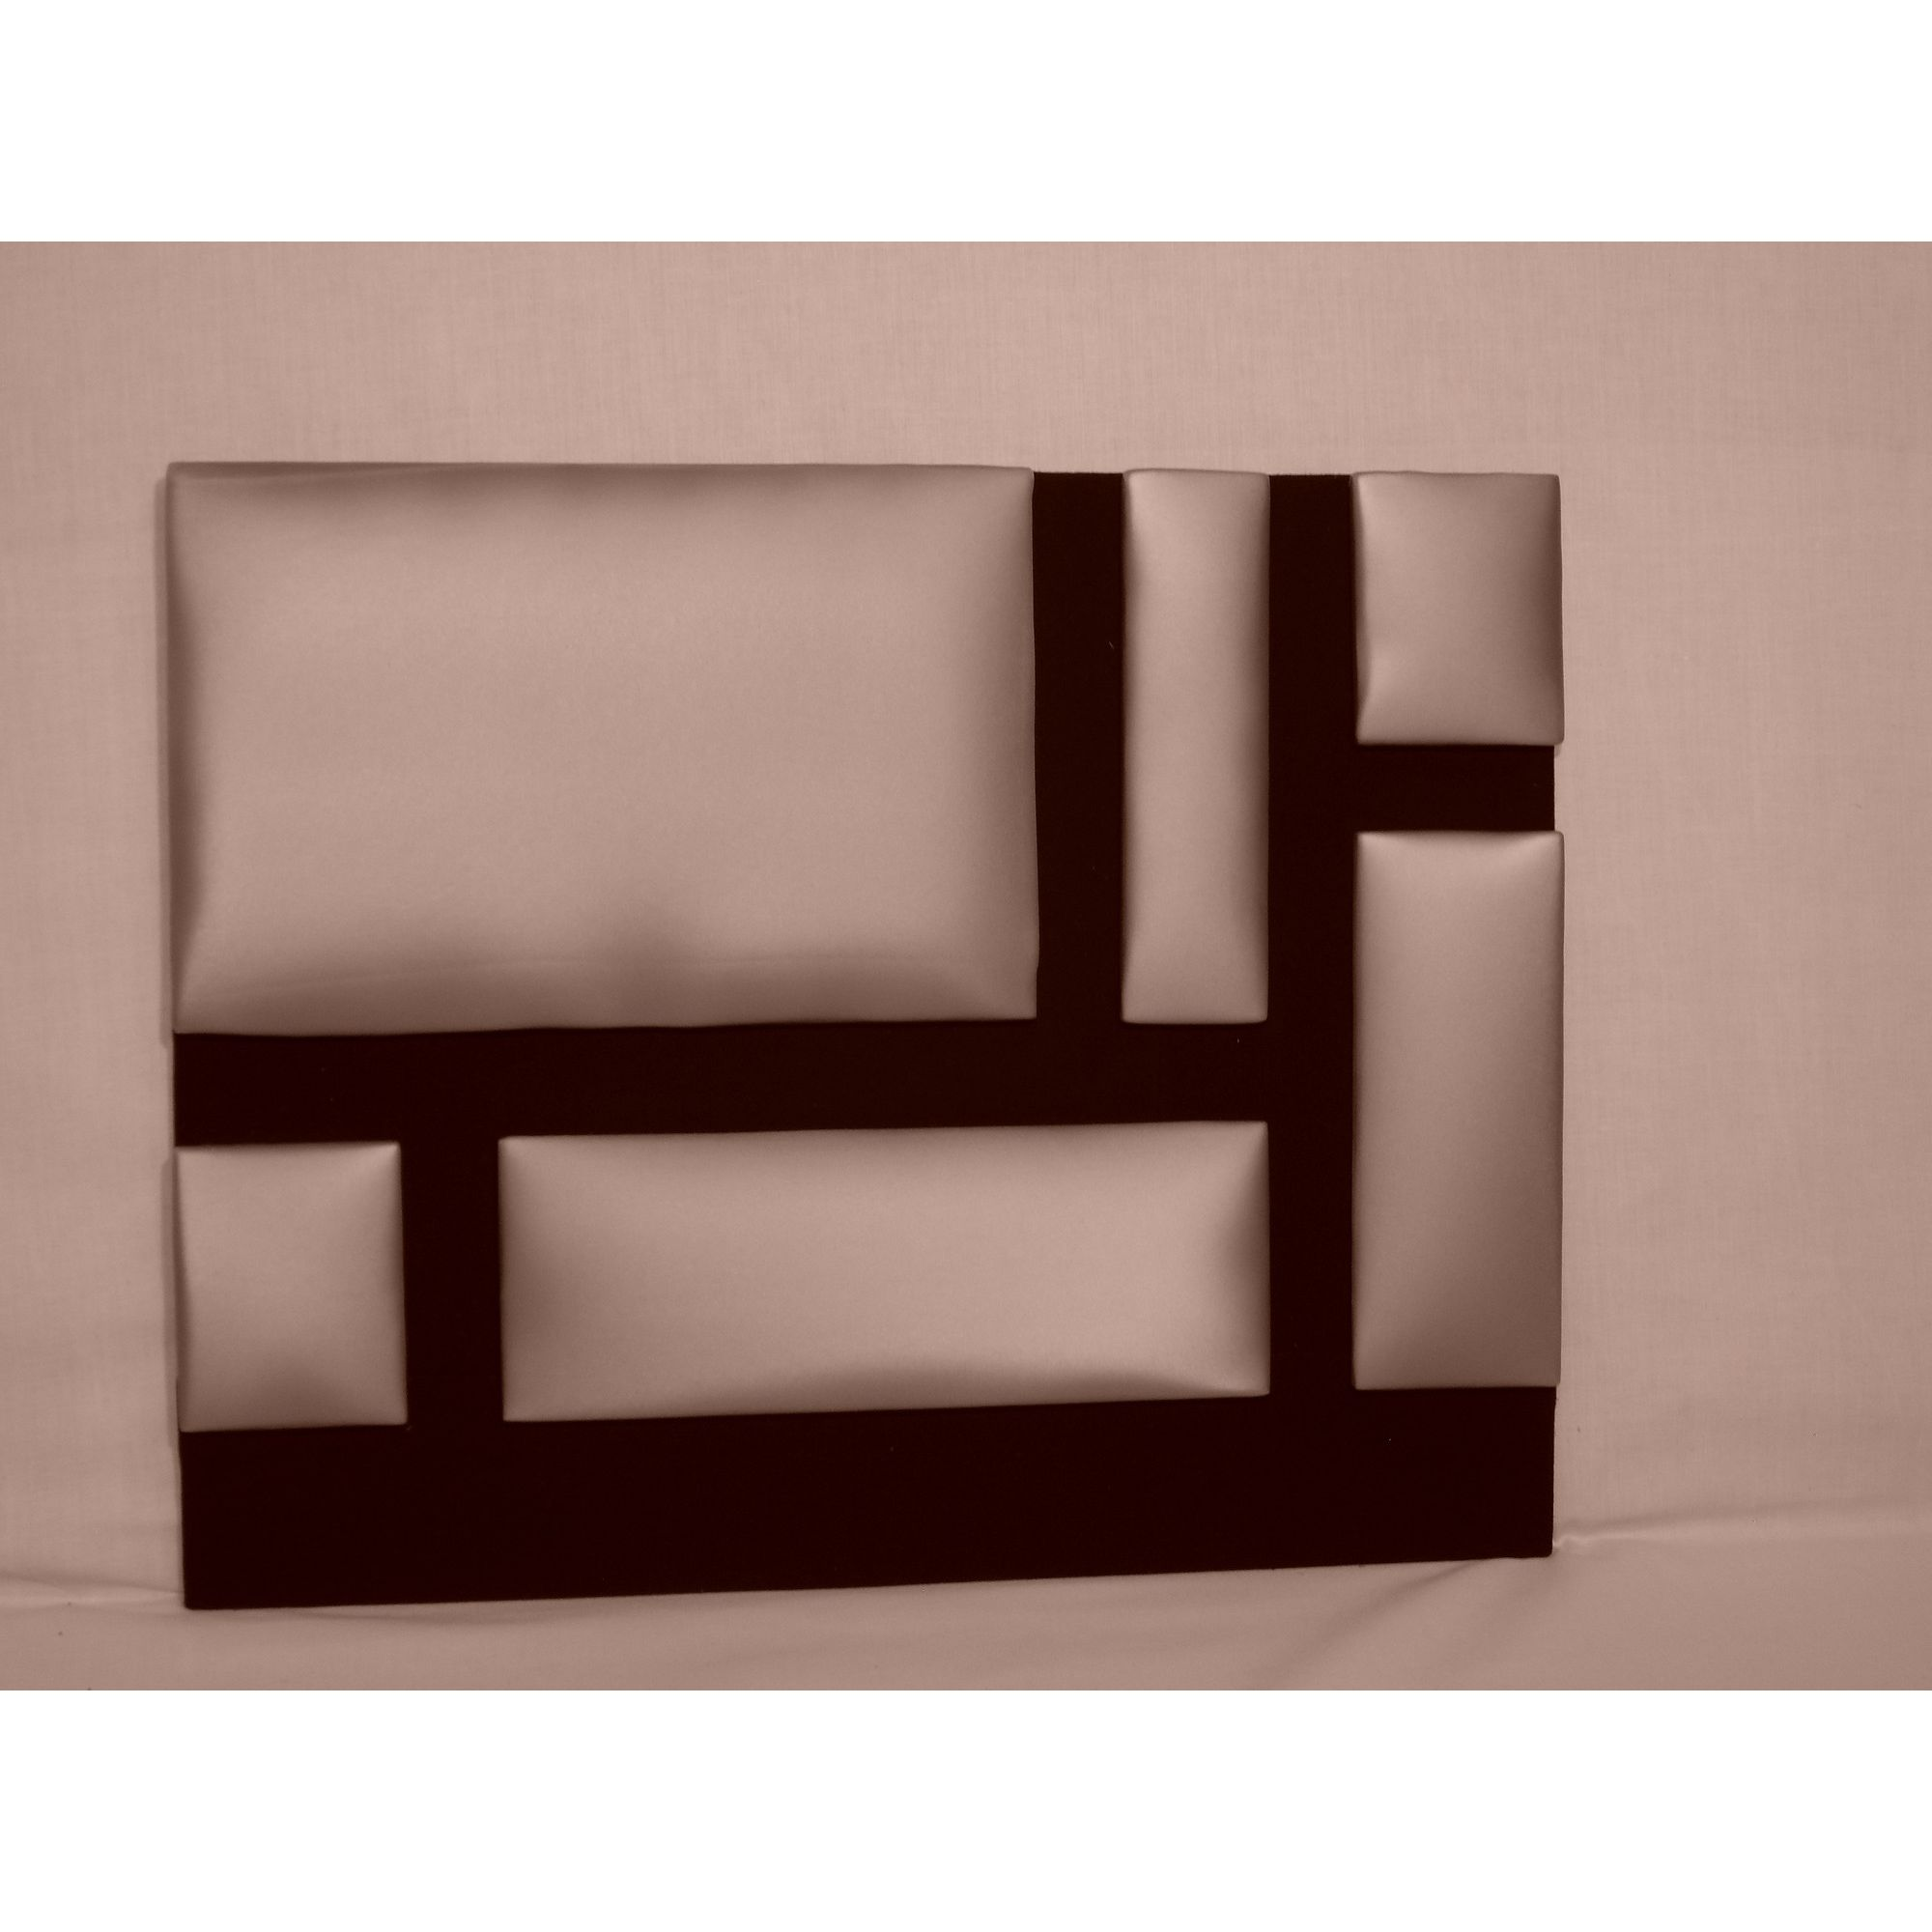 Headboard Solutions Mondrian Headboard - Apollo Malazine - Double at Tesco Direct